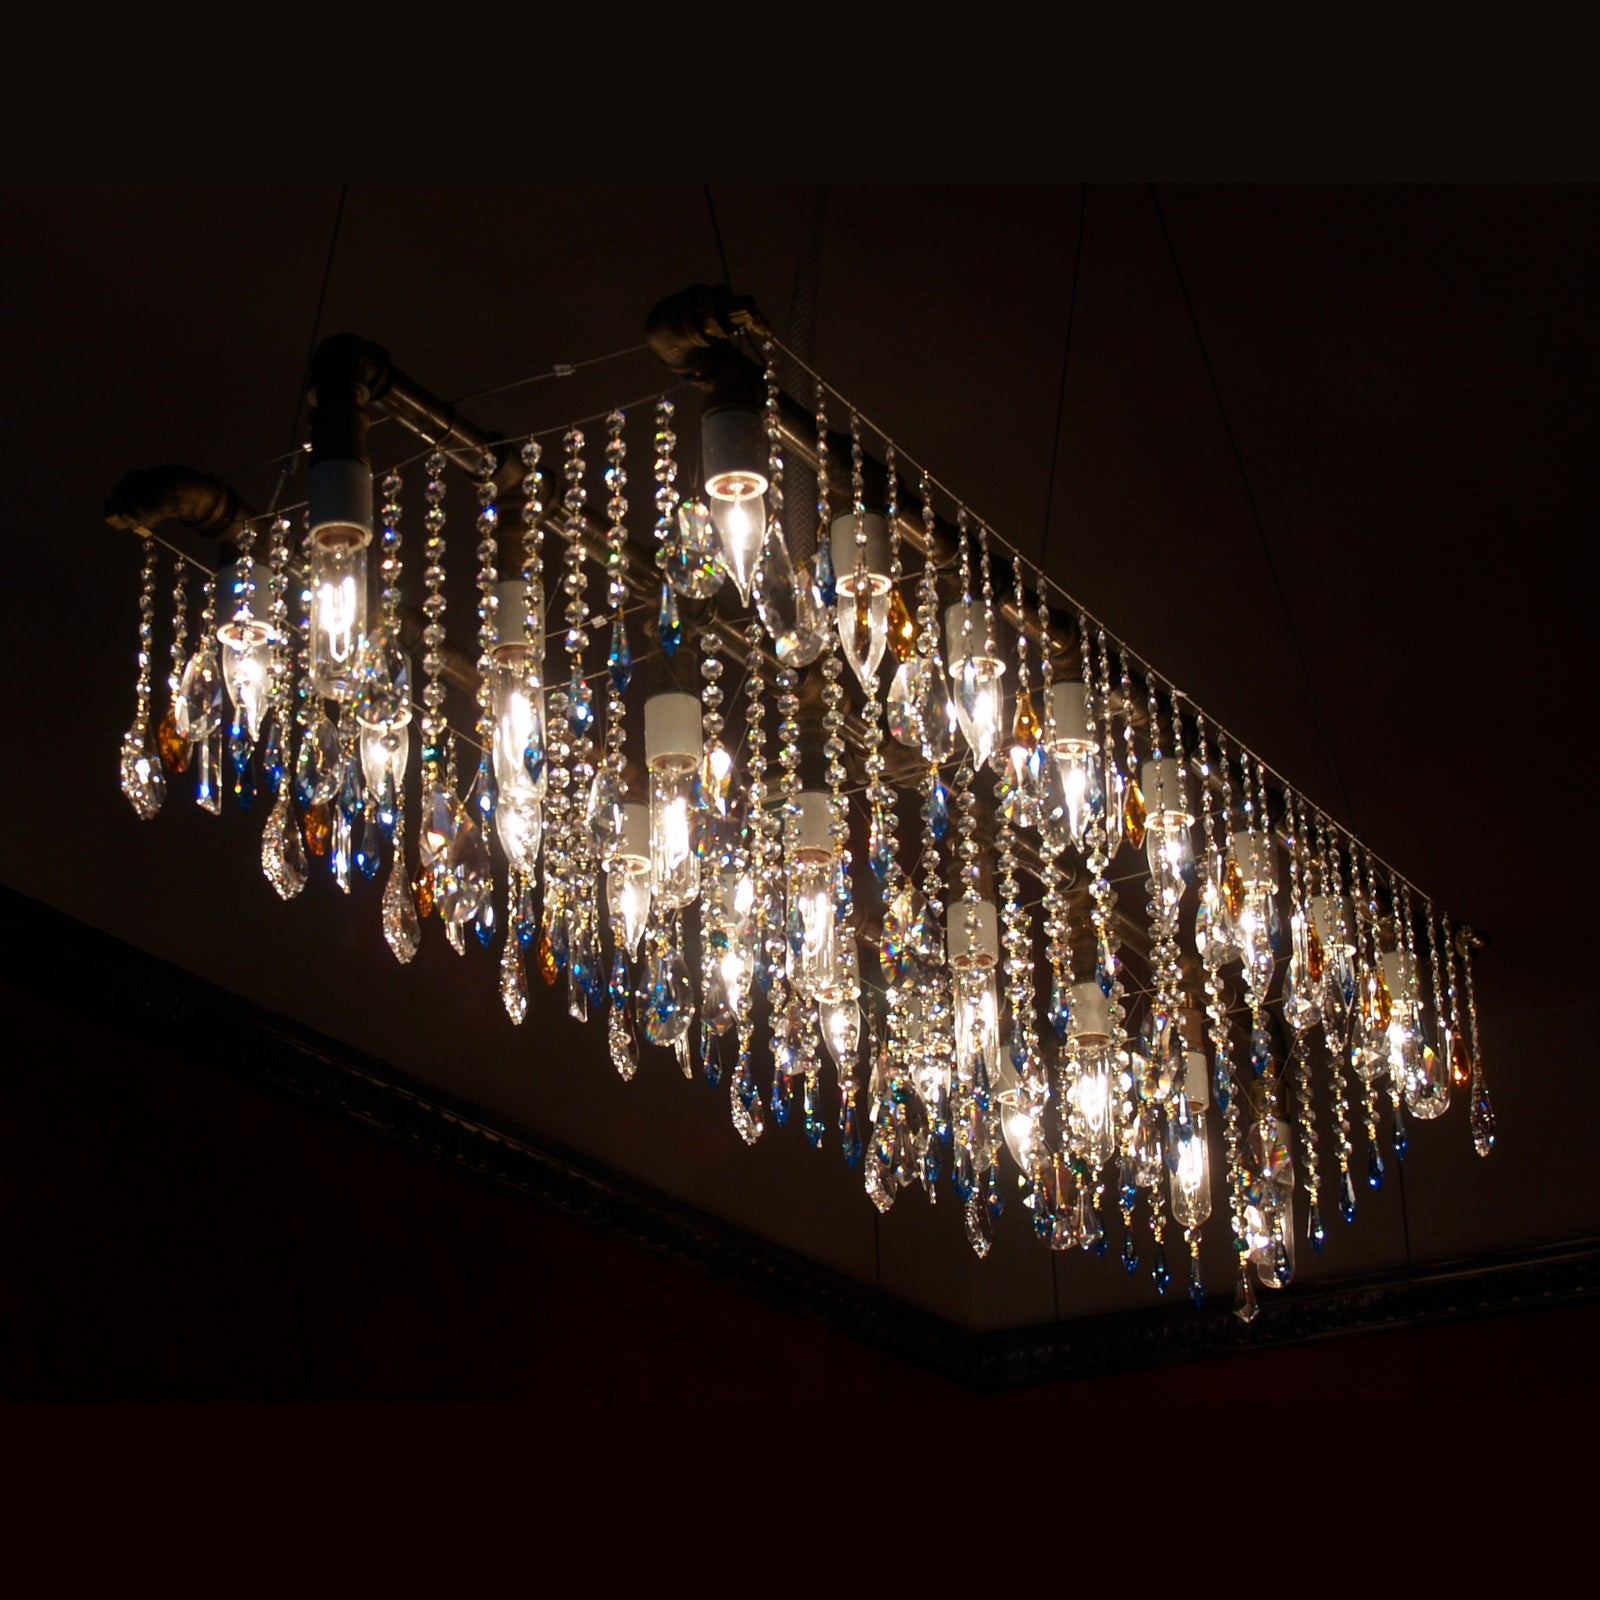 The amazing Industrial Triple-Rail Chandelier